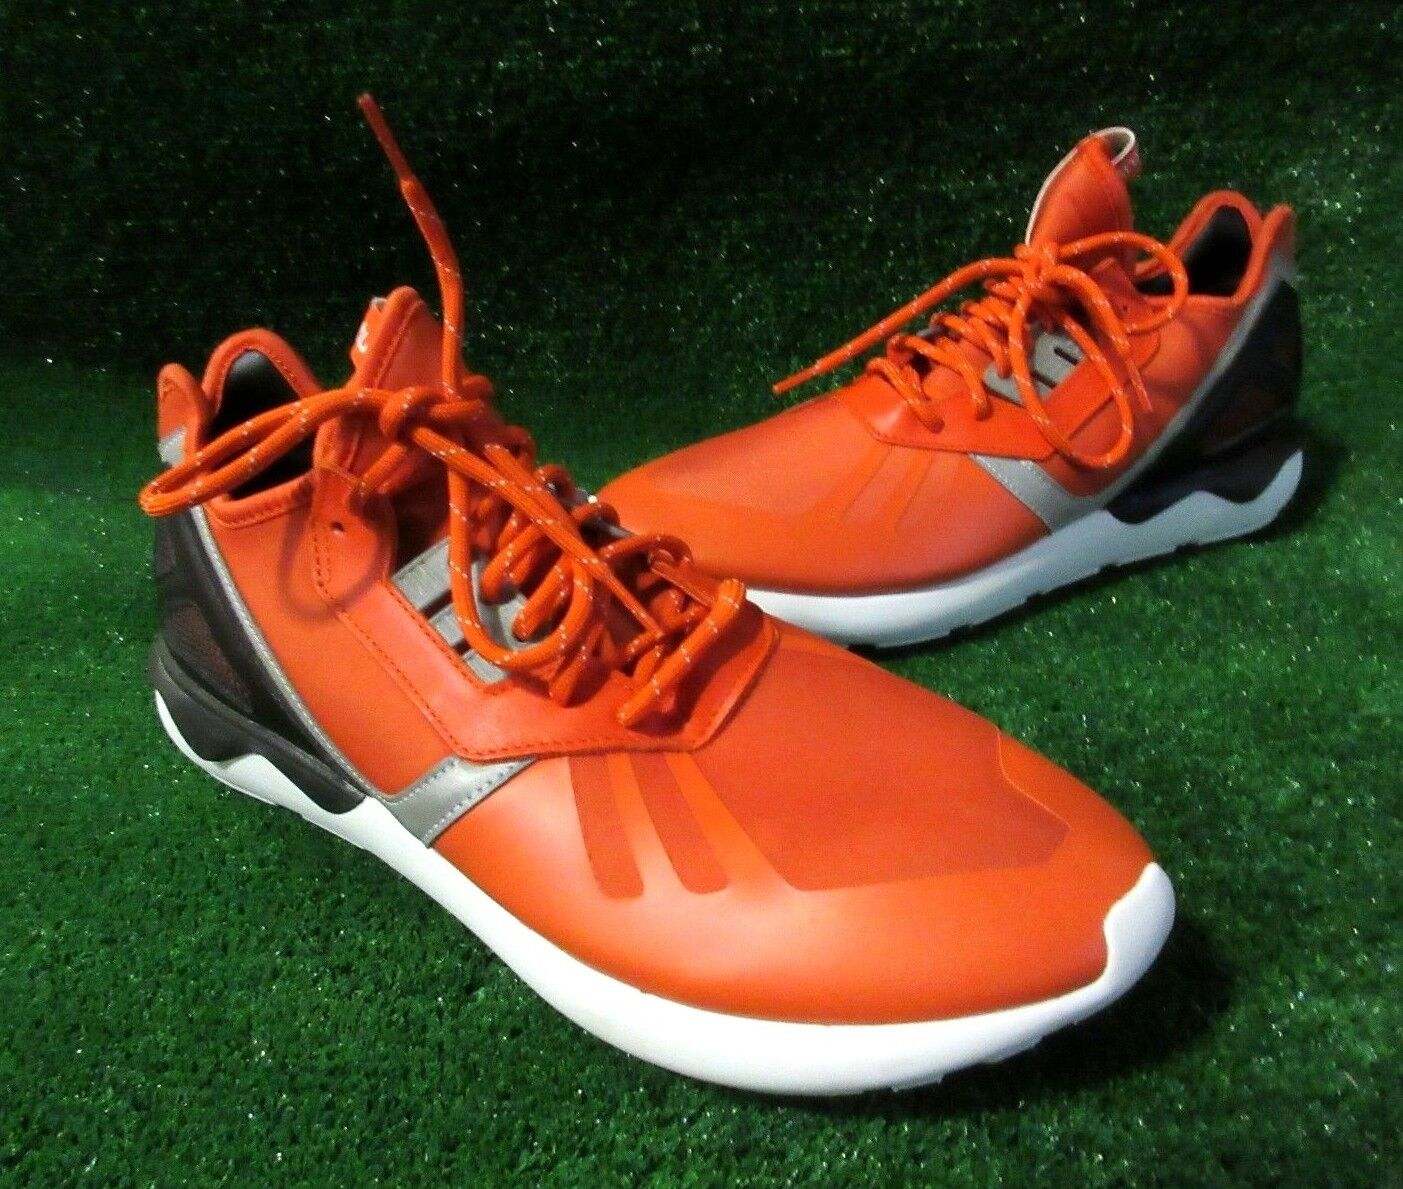 Adidas Hommes Tubular Tubular Hommes Coureur Chaussures Course Orange Taille 12 a0a613